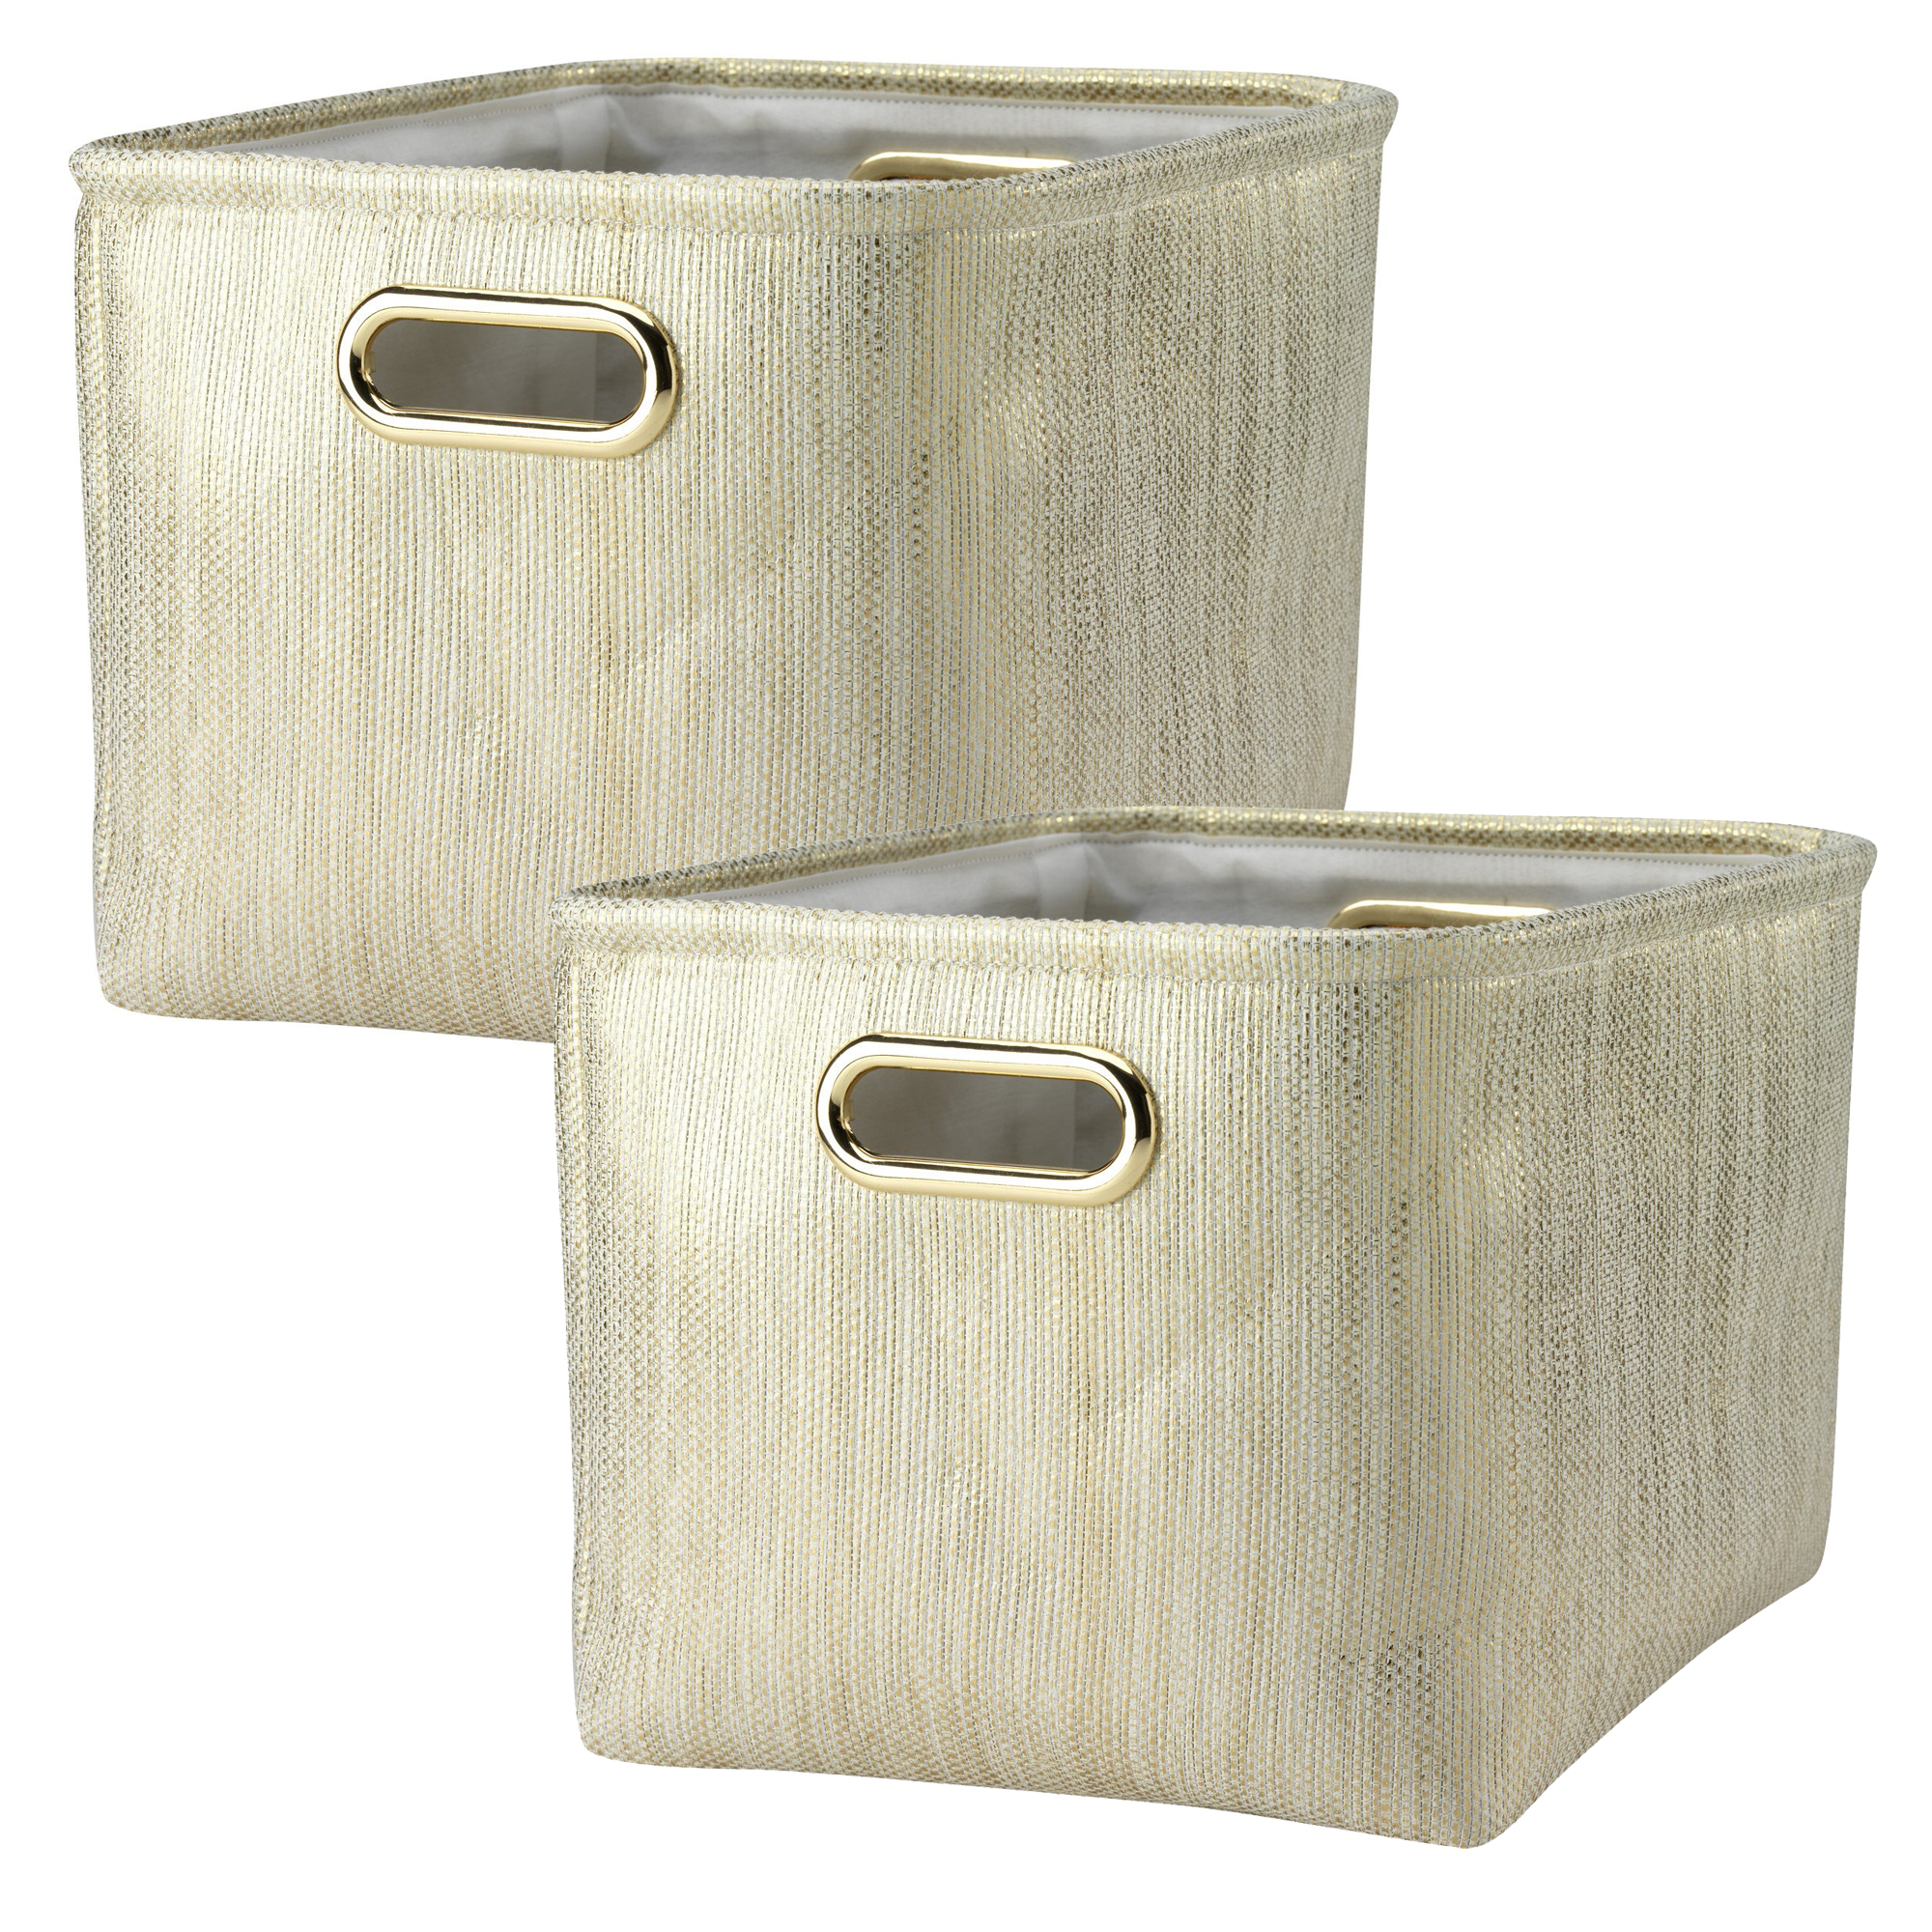 Lambs & Ivy Metallic Gold Storage Basket - 2 Pack